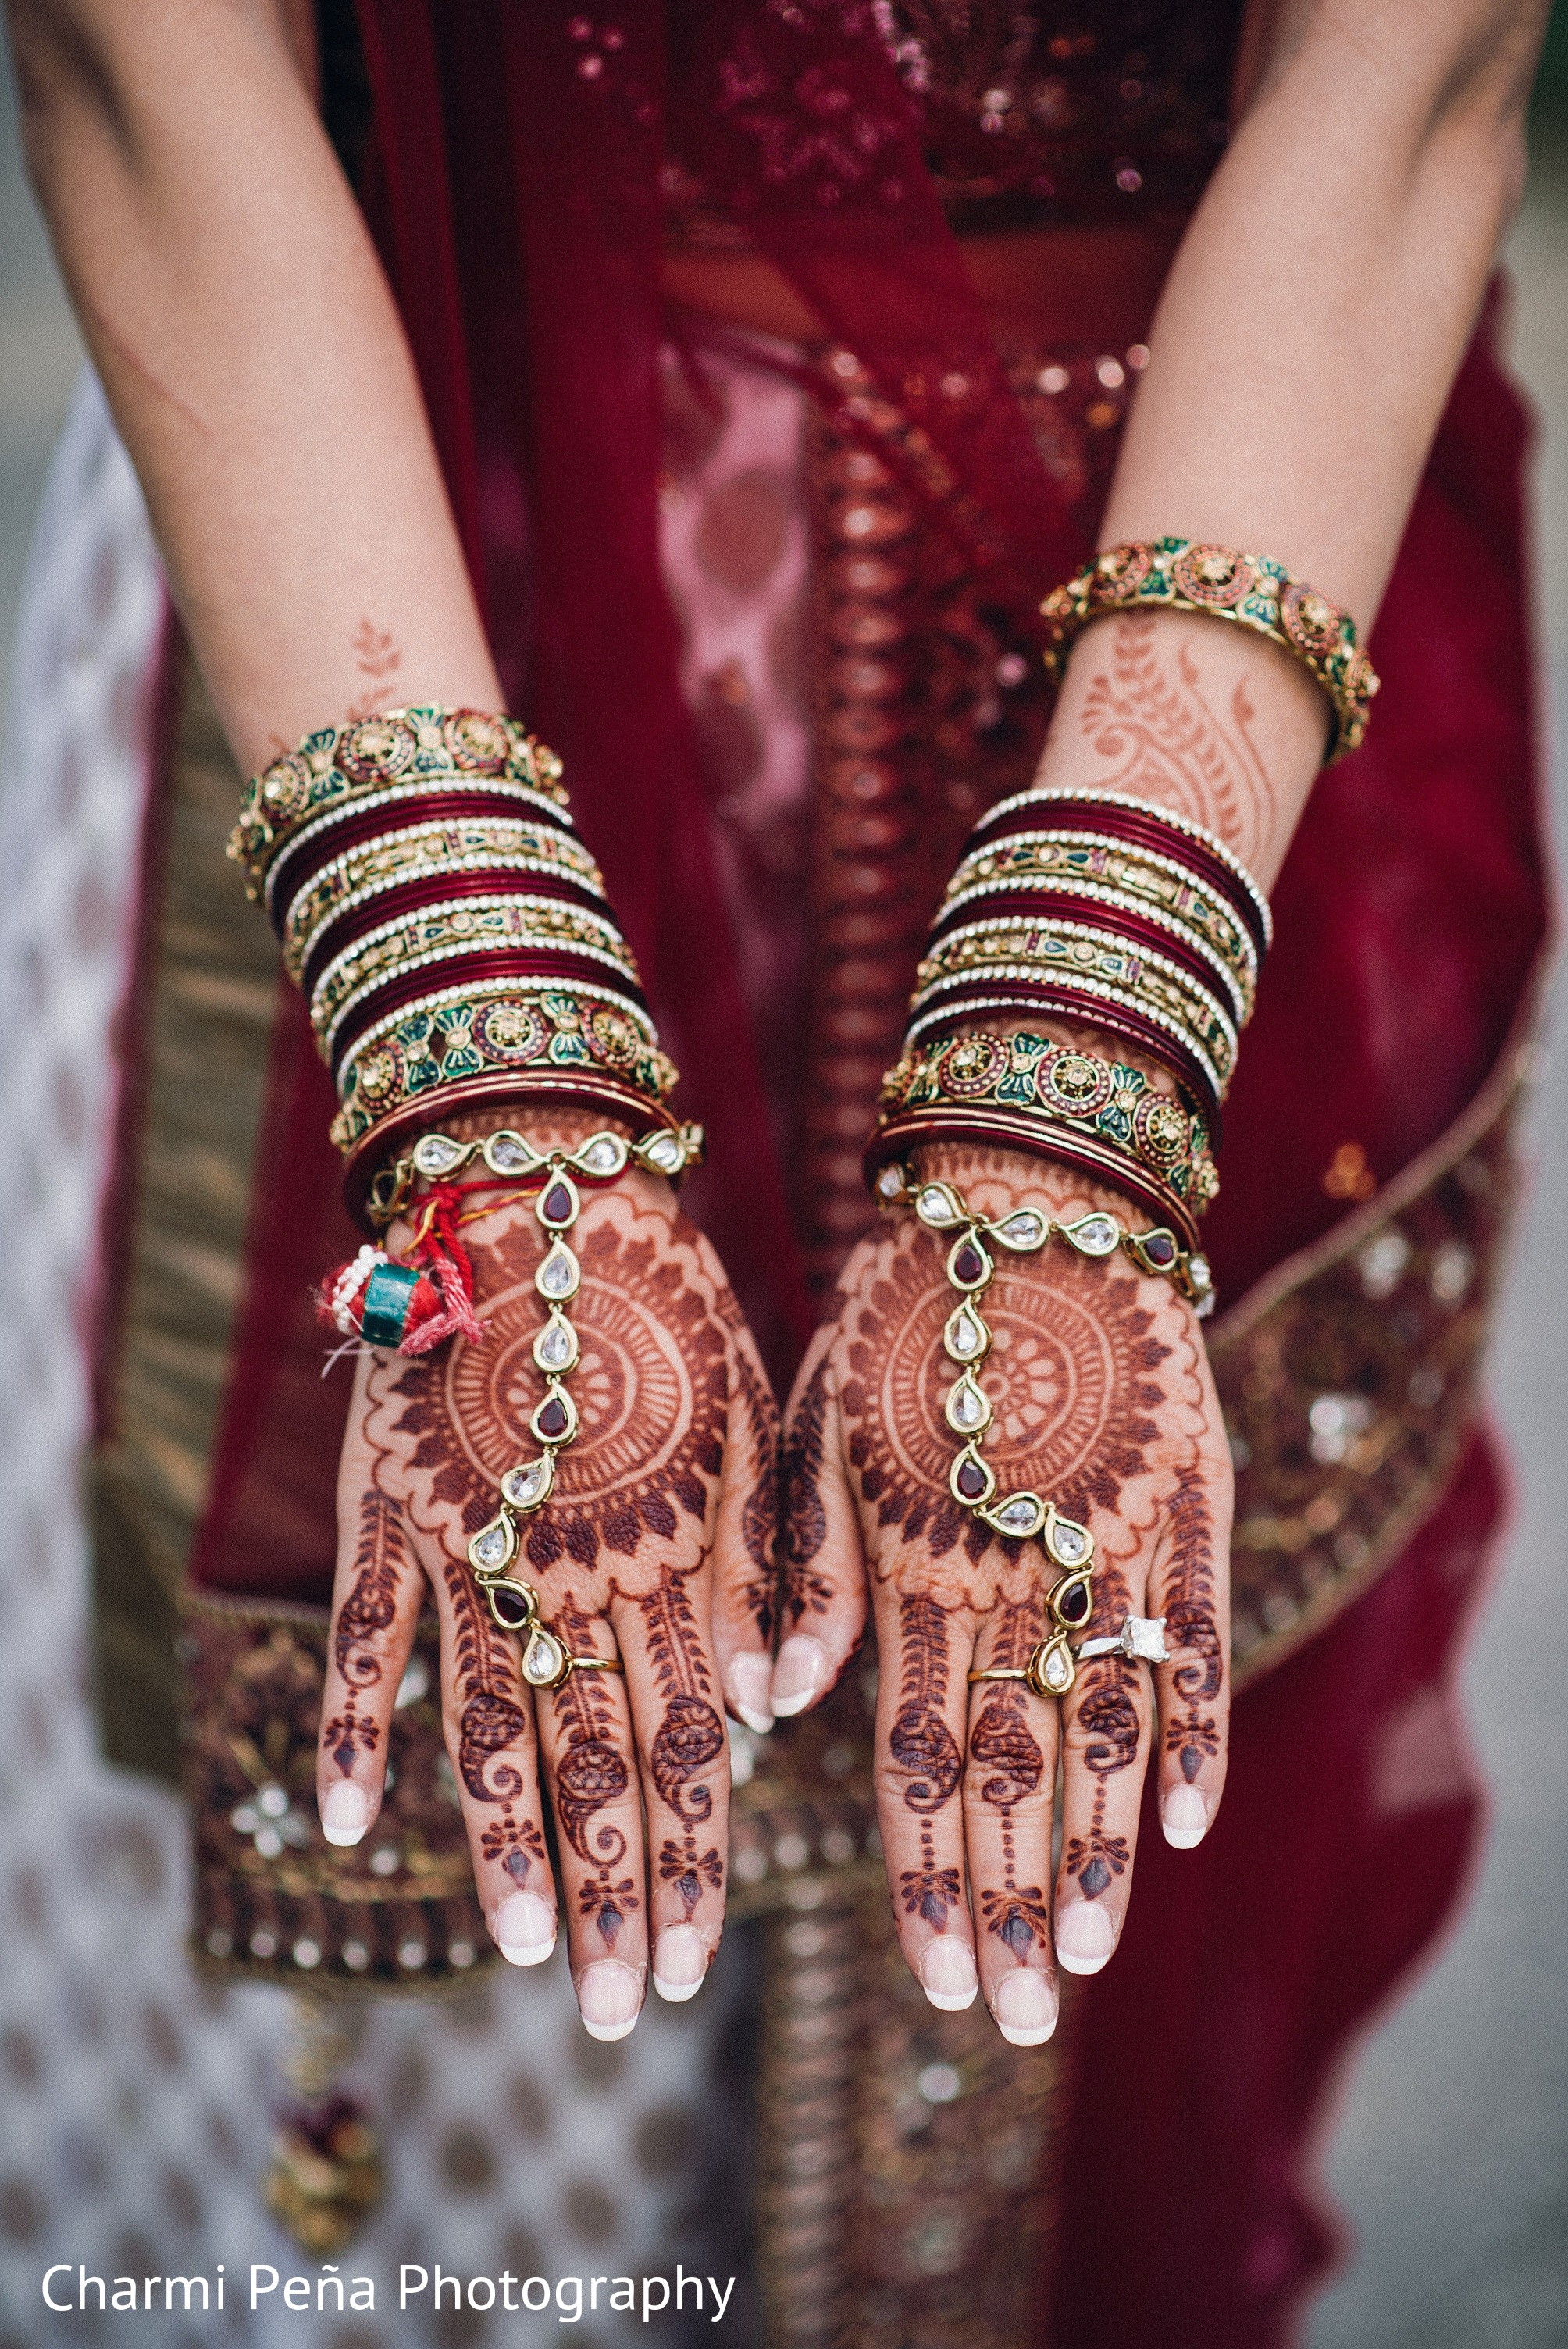 Mehndi Hands In Springfield PA South Asian Wedding By Charmi Pena Photography